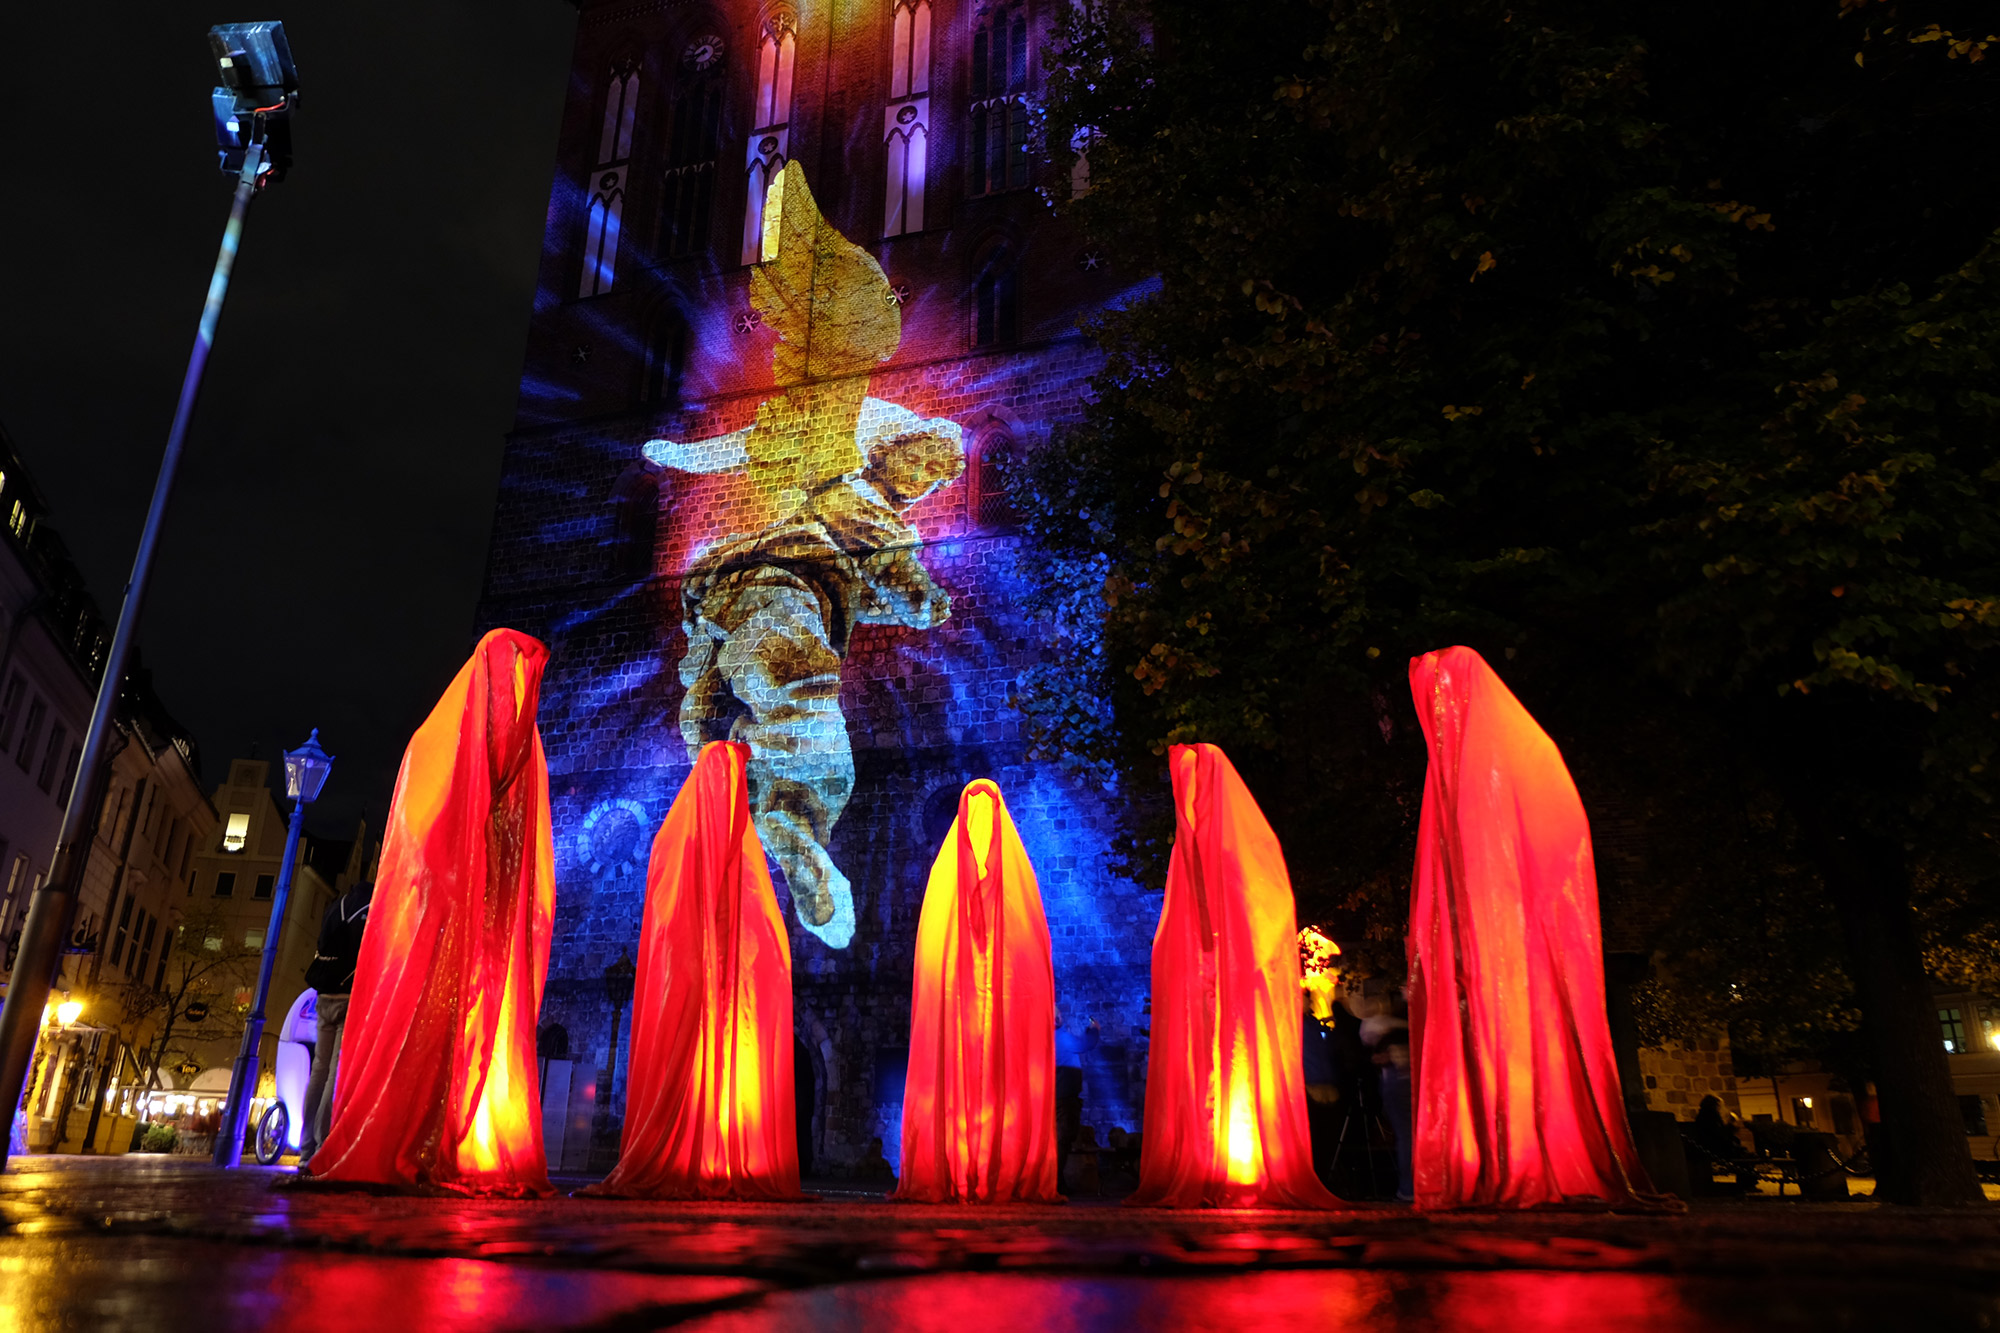 festival-of-lights-berlin-light-art-show-fine-arts-contemporary-art-design-modern-sculpture-statue-ghost-faceless-glow-lumina-8858